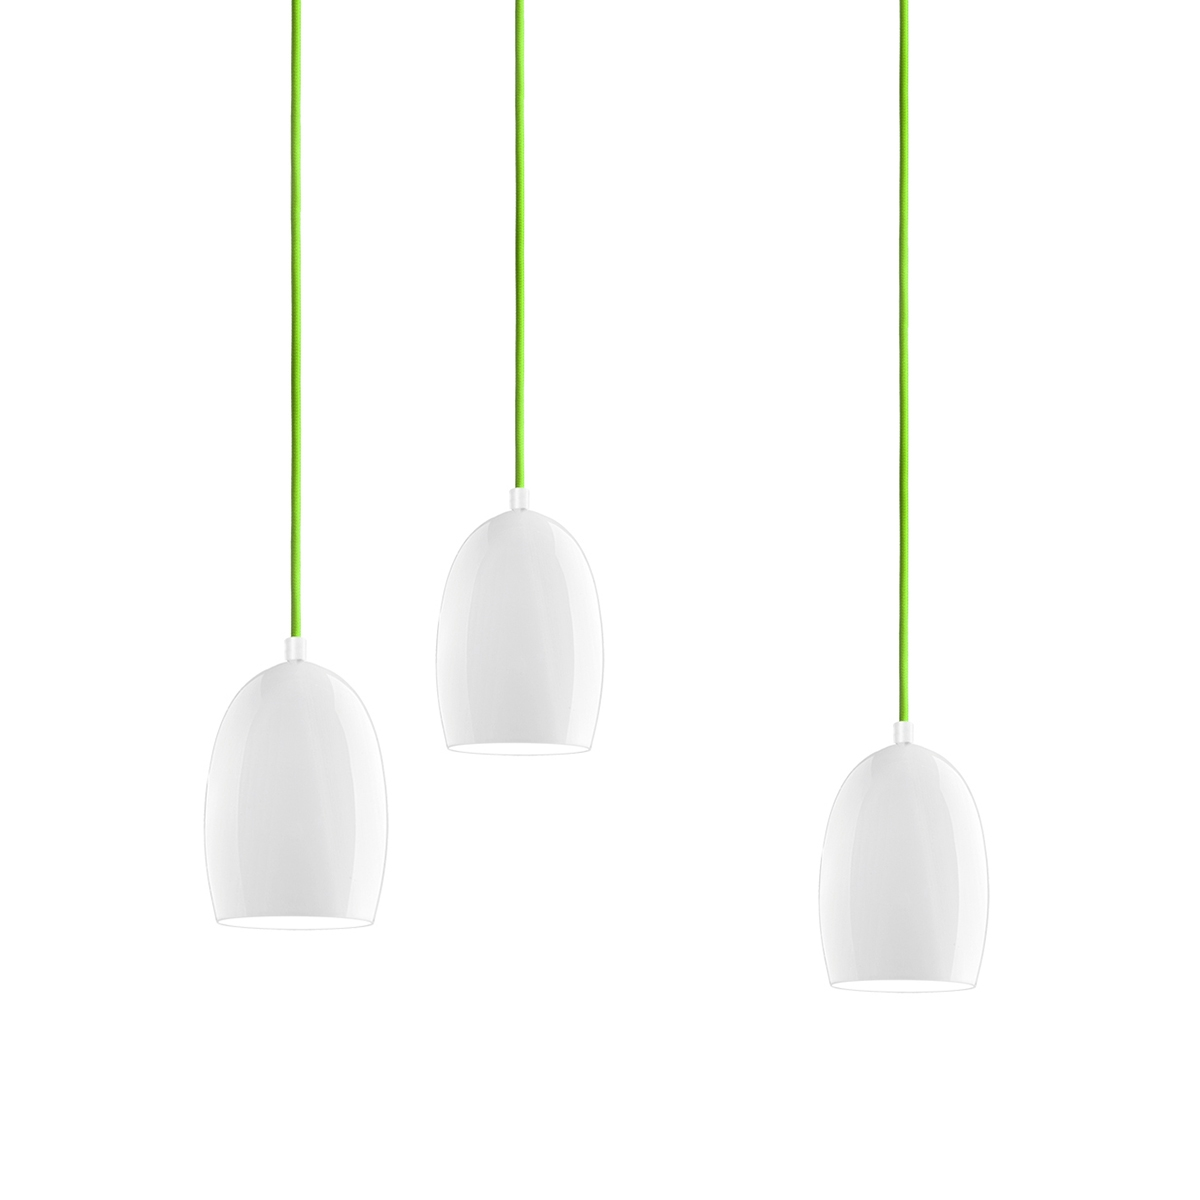 Petite suspension multiple cloche avec abat jour brillant for Suspension multiple design